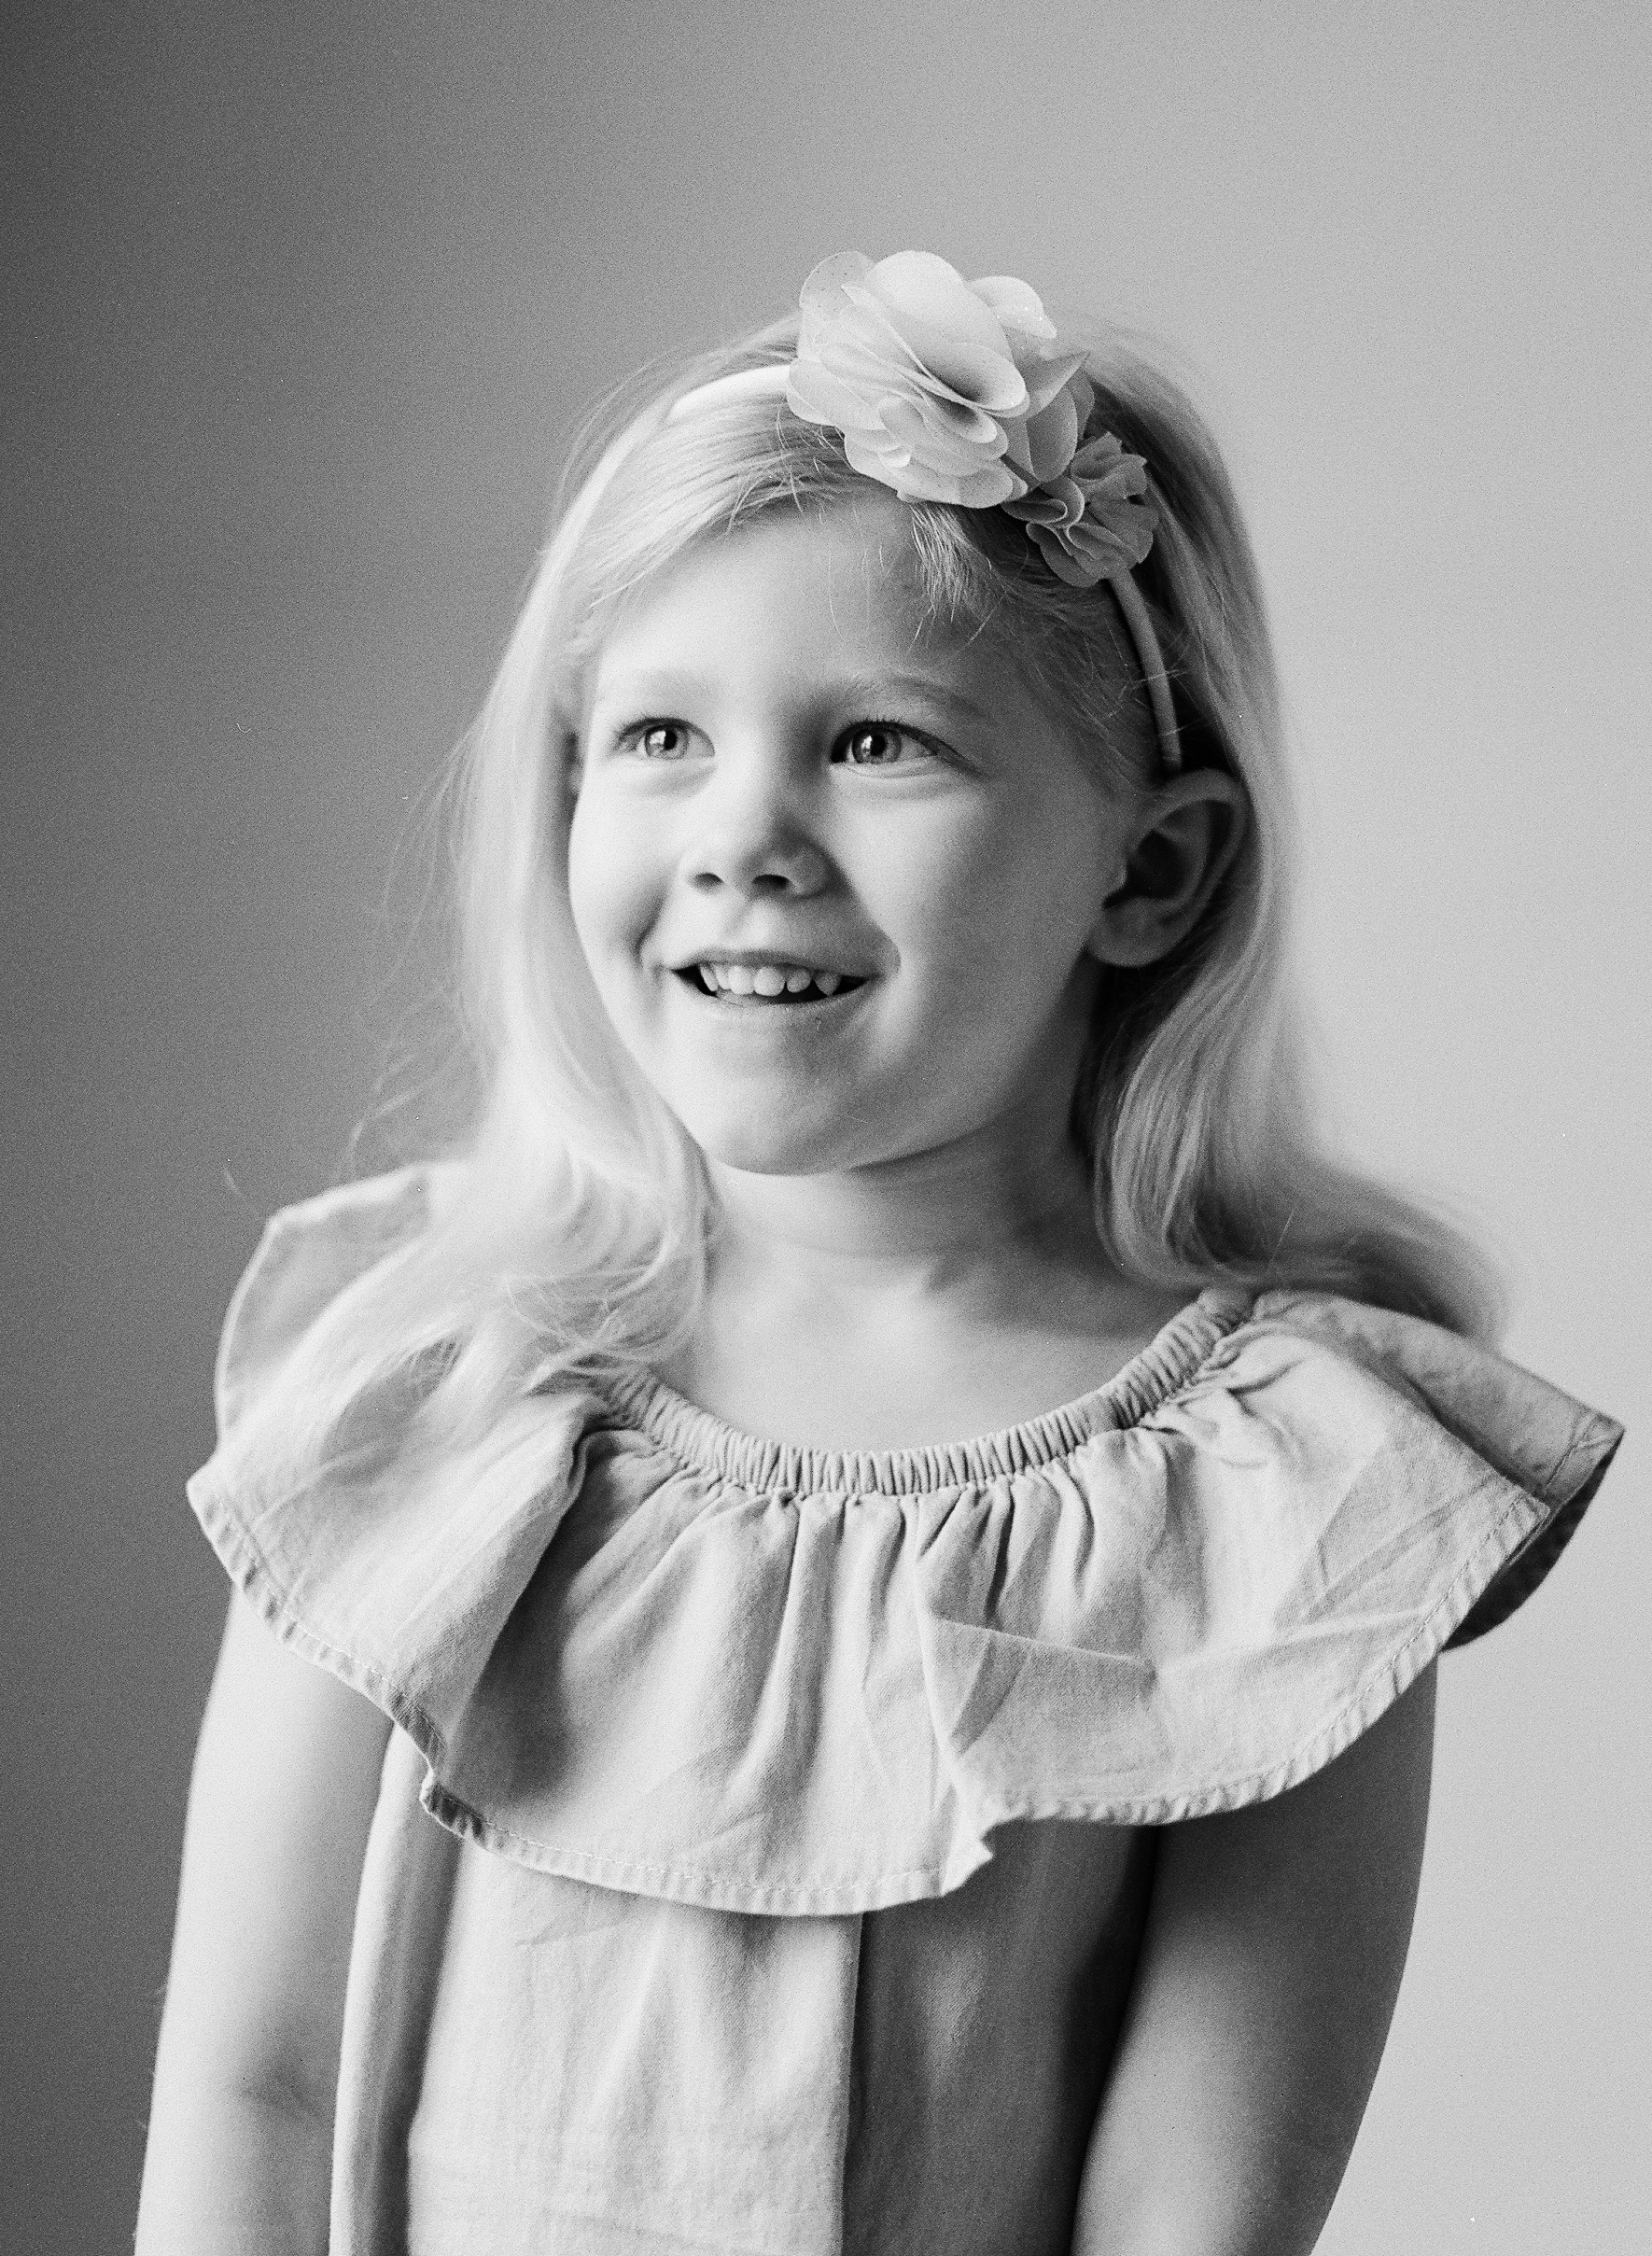 nashville-franklin-blackandwhite-childrens-portraiture-17.JPG